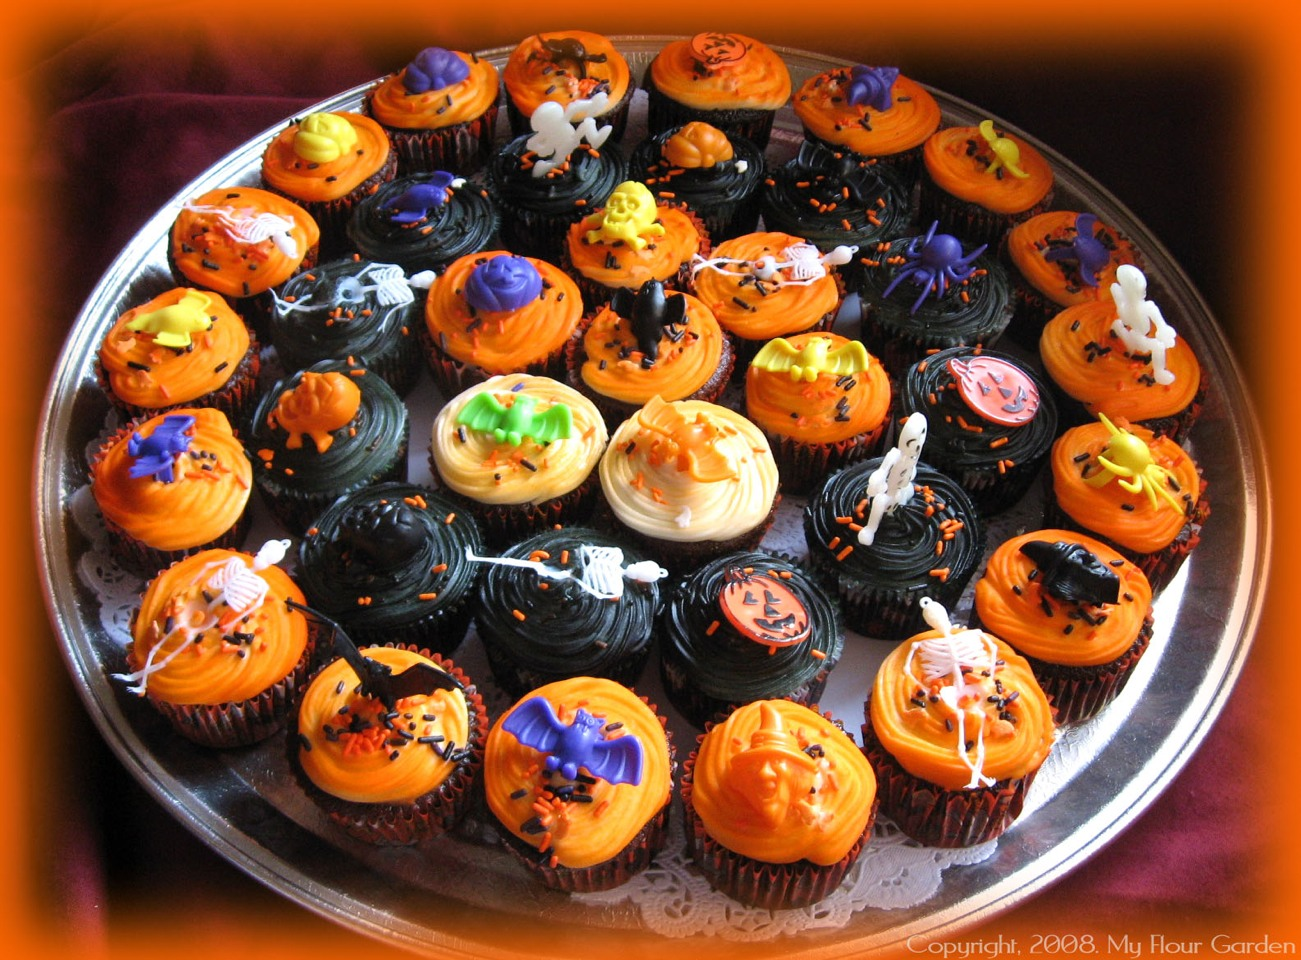 Try making some super scary cupcakes or cake-pops